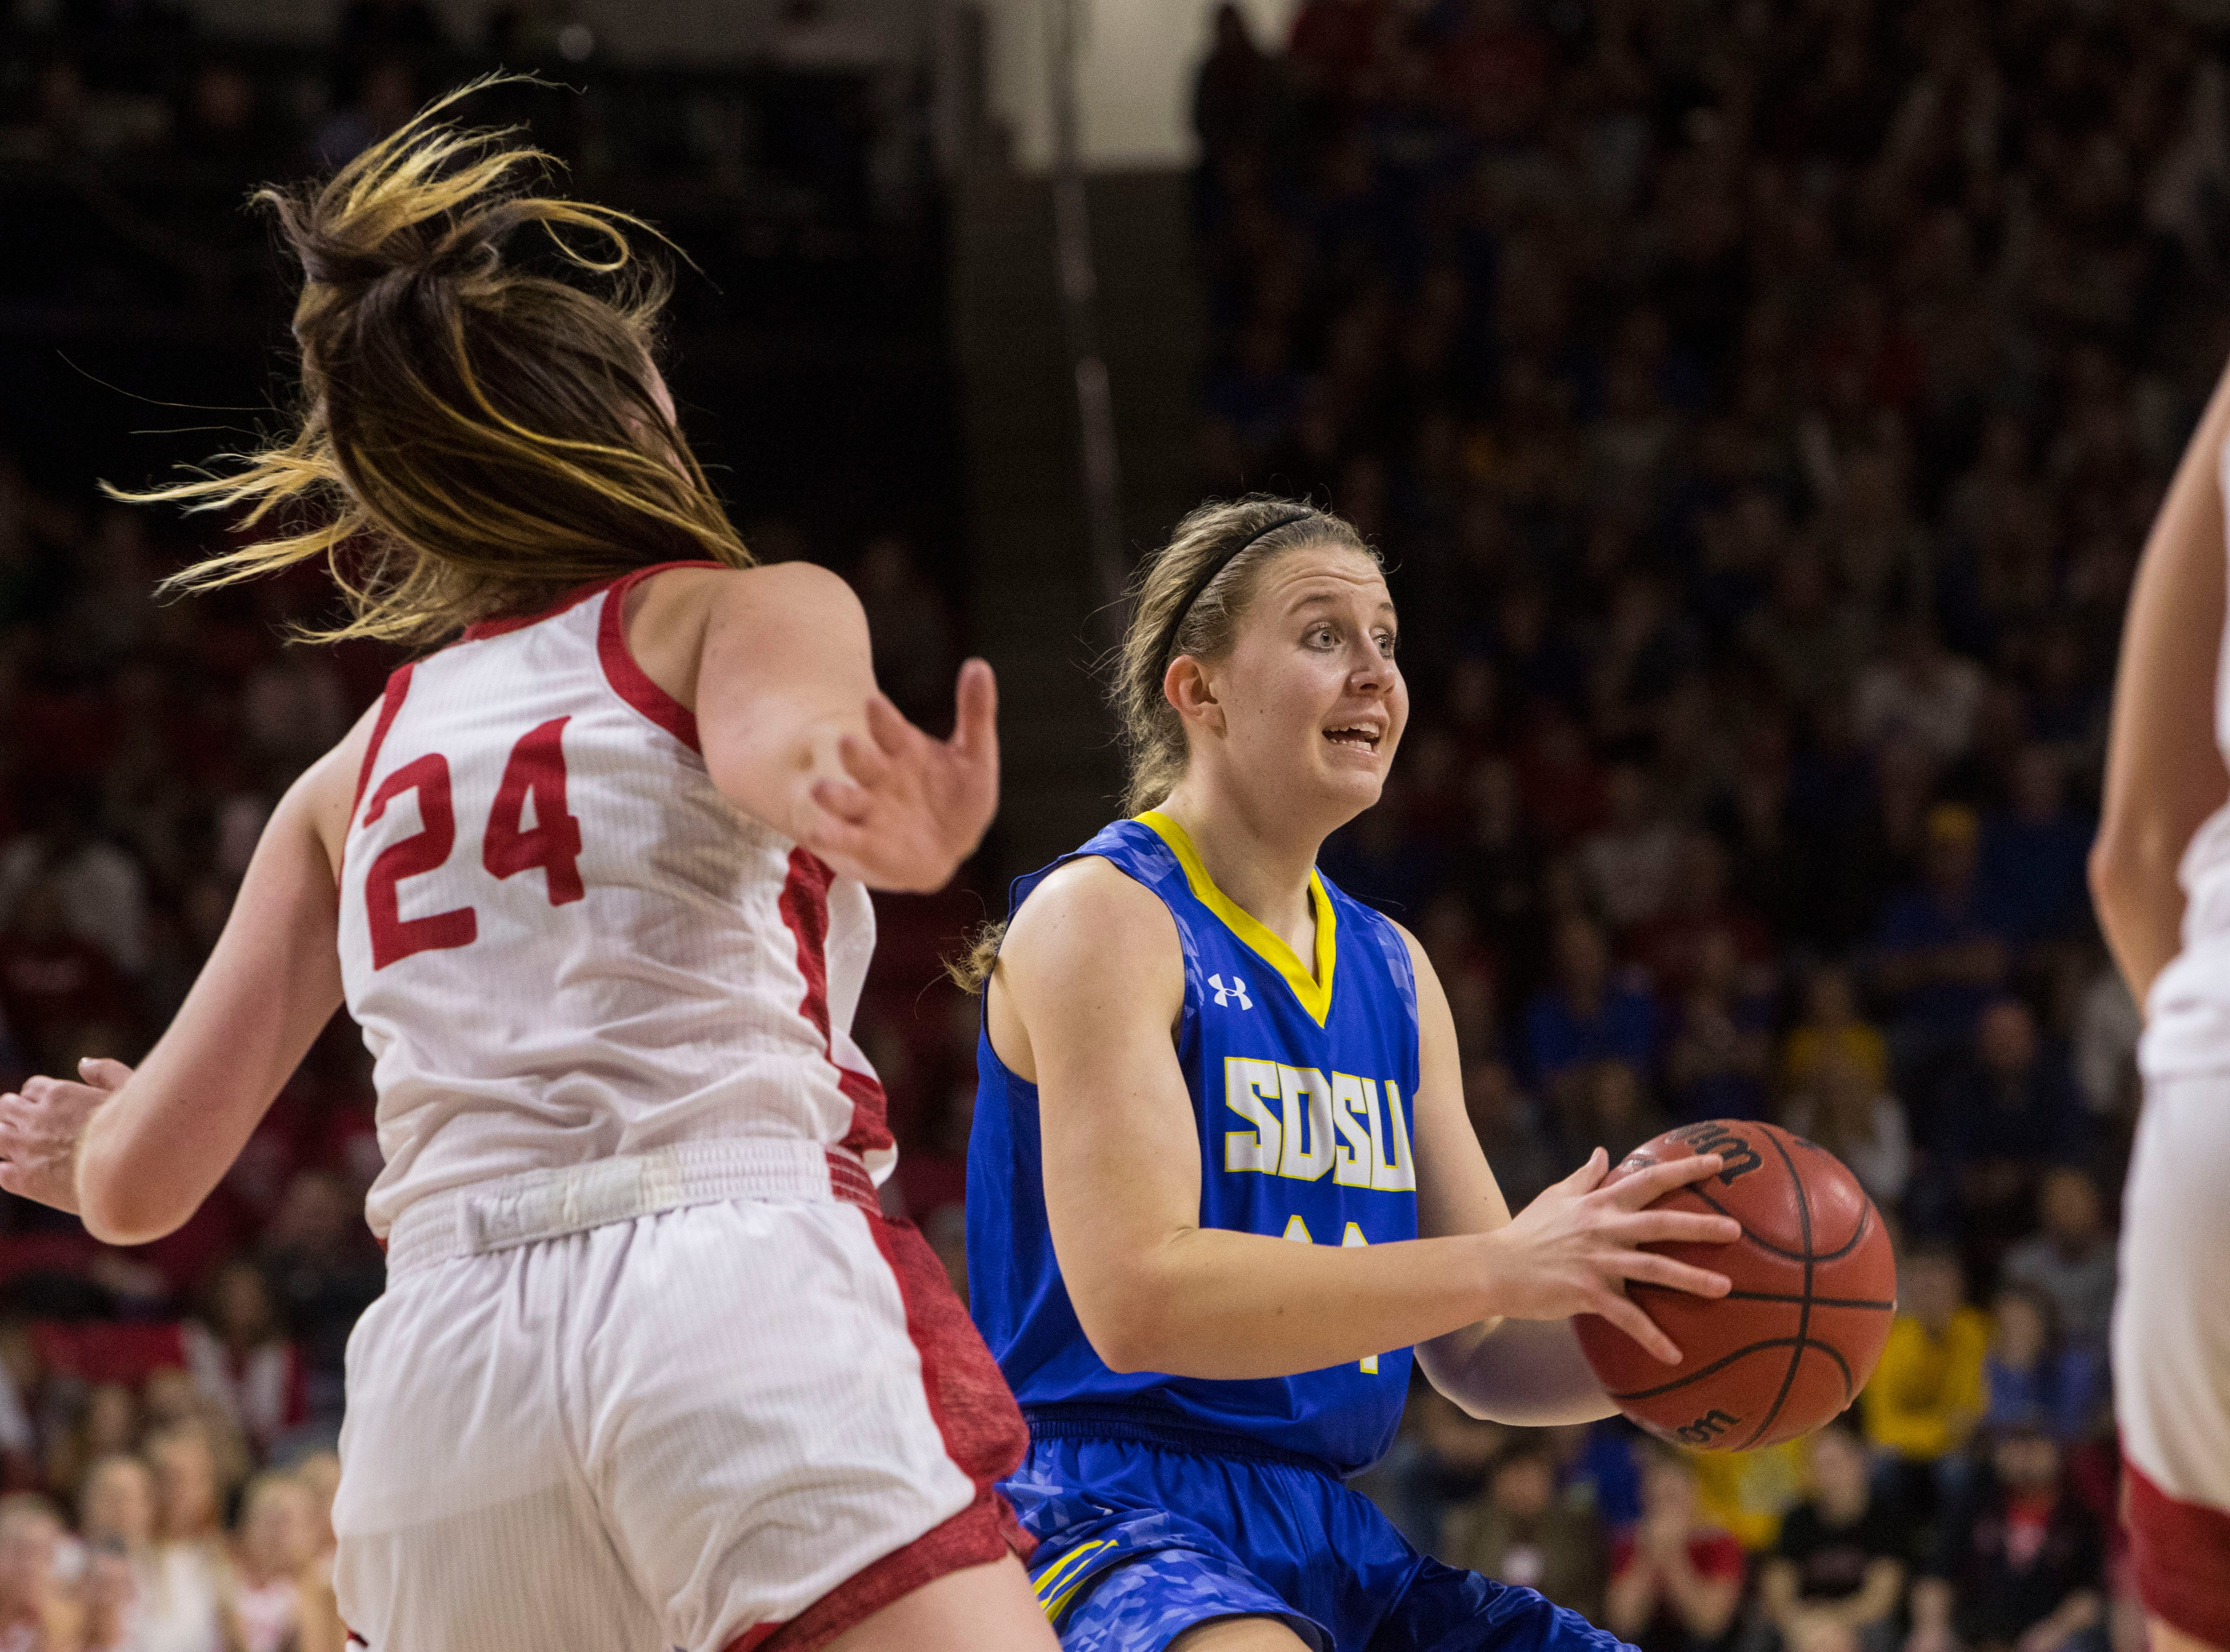 SDSU's Myah Selland (44) looks to pass the ball during a game against USD, Sunday, Jan. 6, 2019 in Vermillion, S.D.